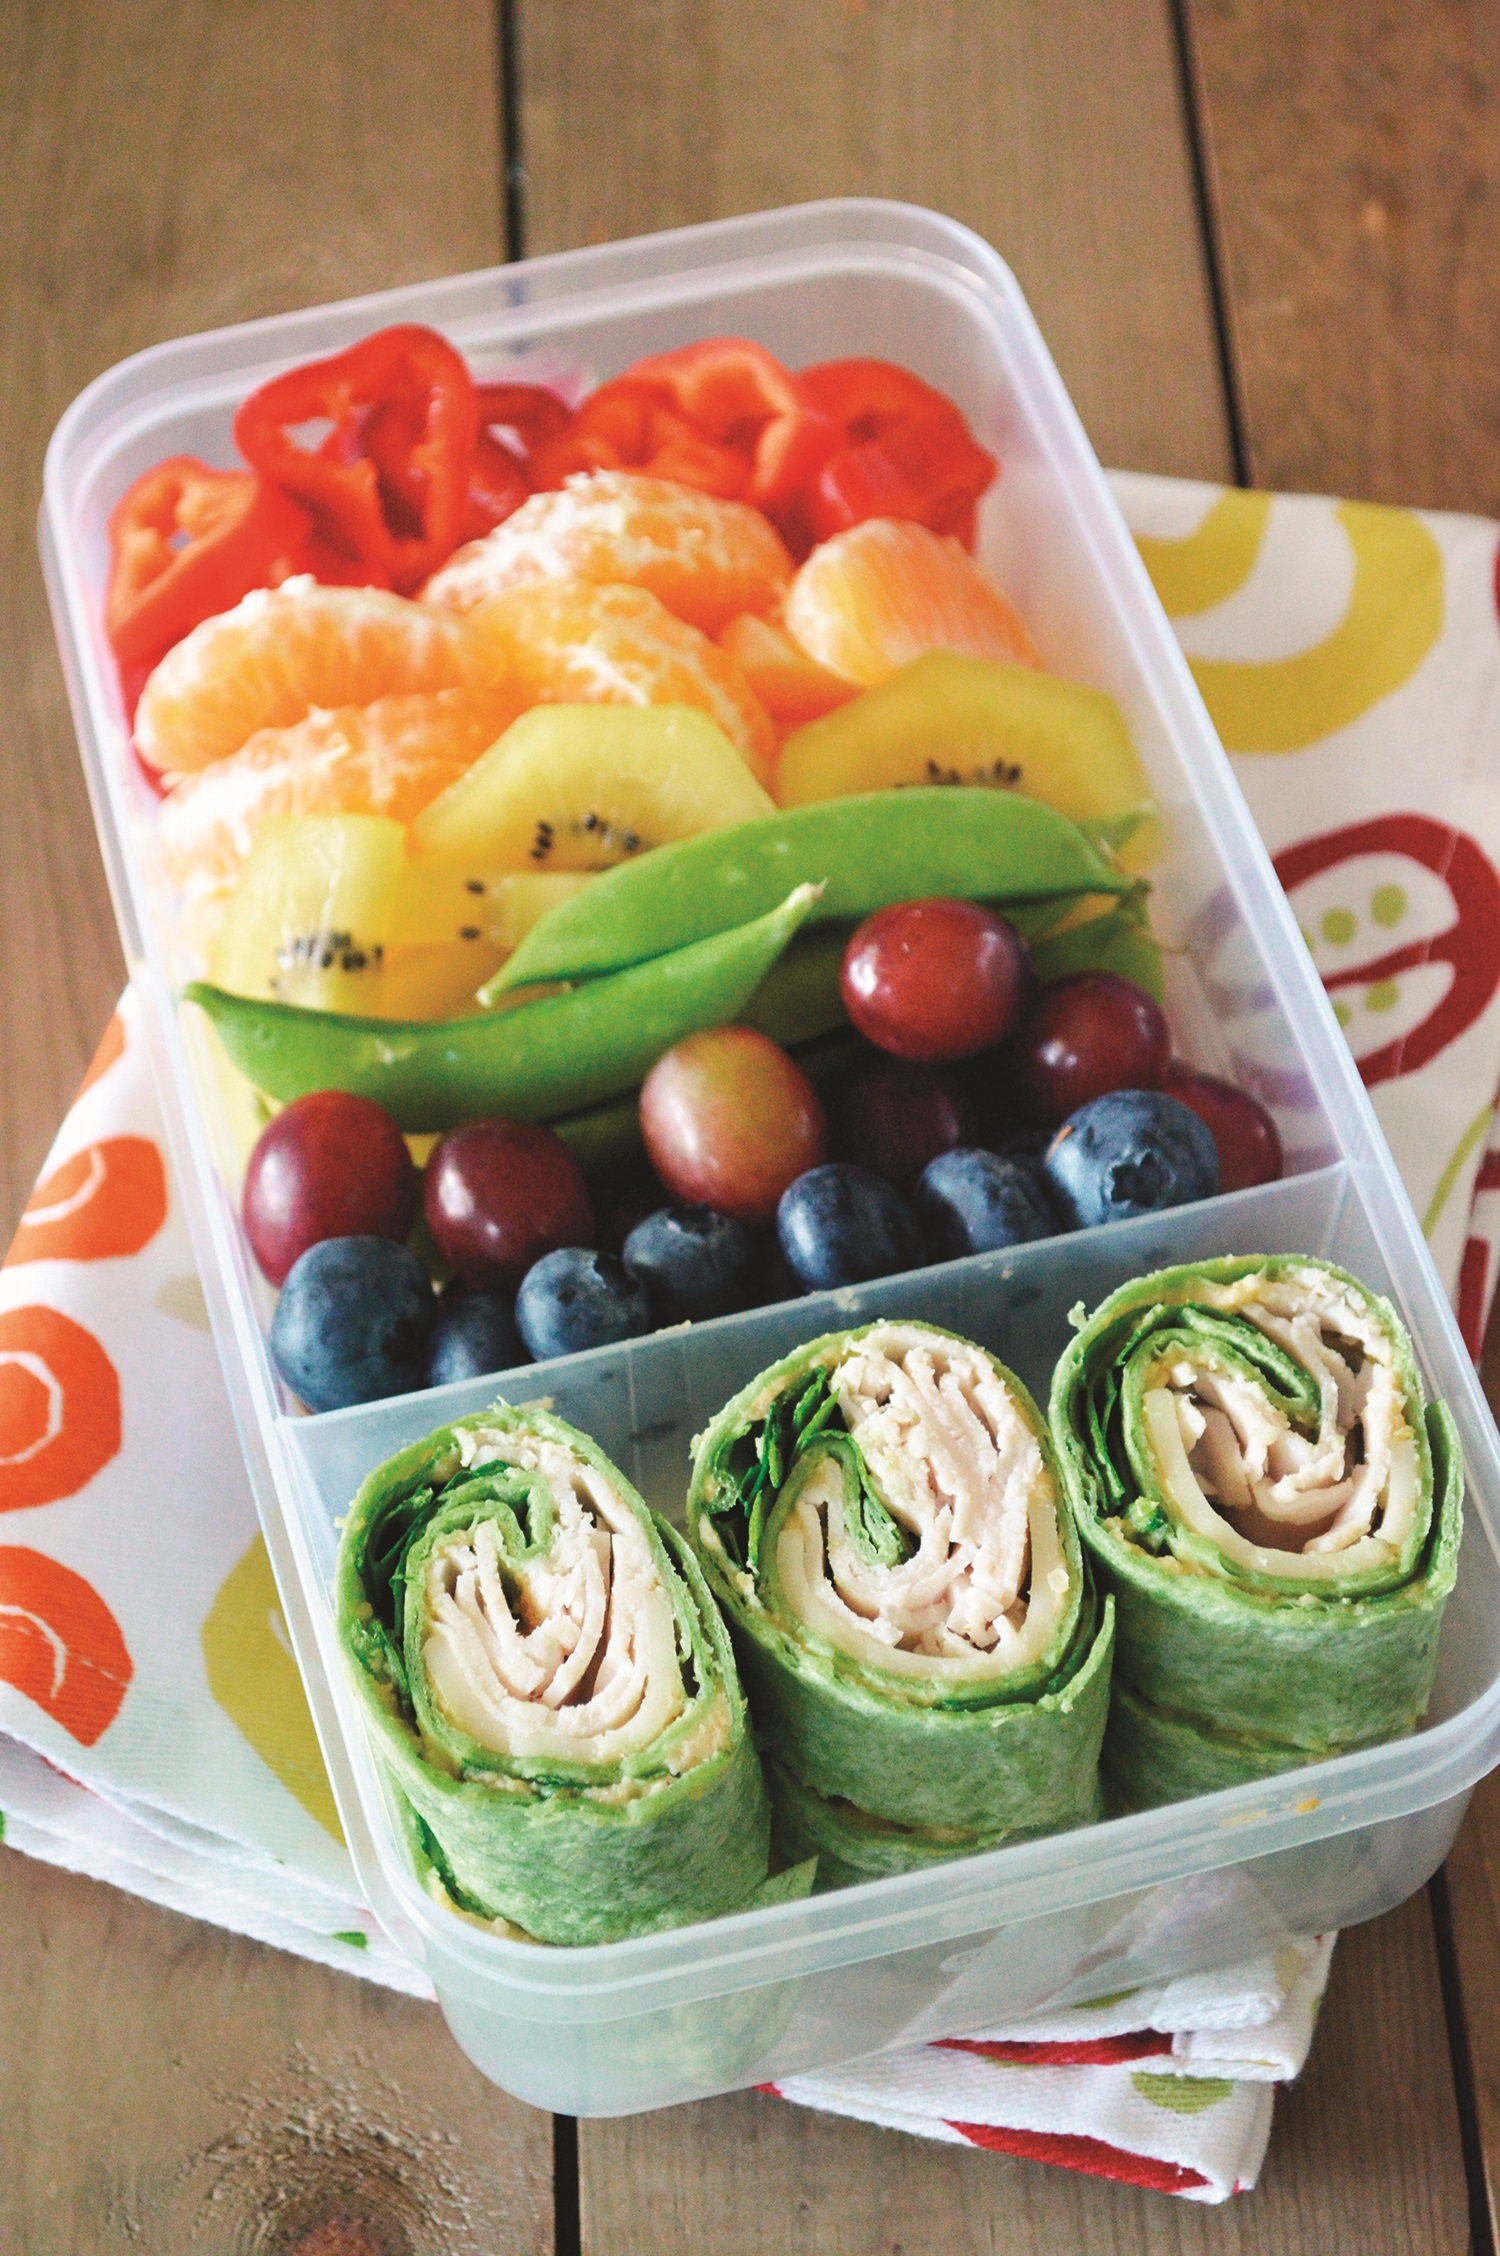 Rainbow Bento Box with Deli Spirals Recipe (kid-friendly, dairy-free and school-safe! With gluten-free and vegan options)